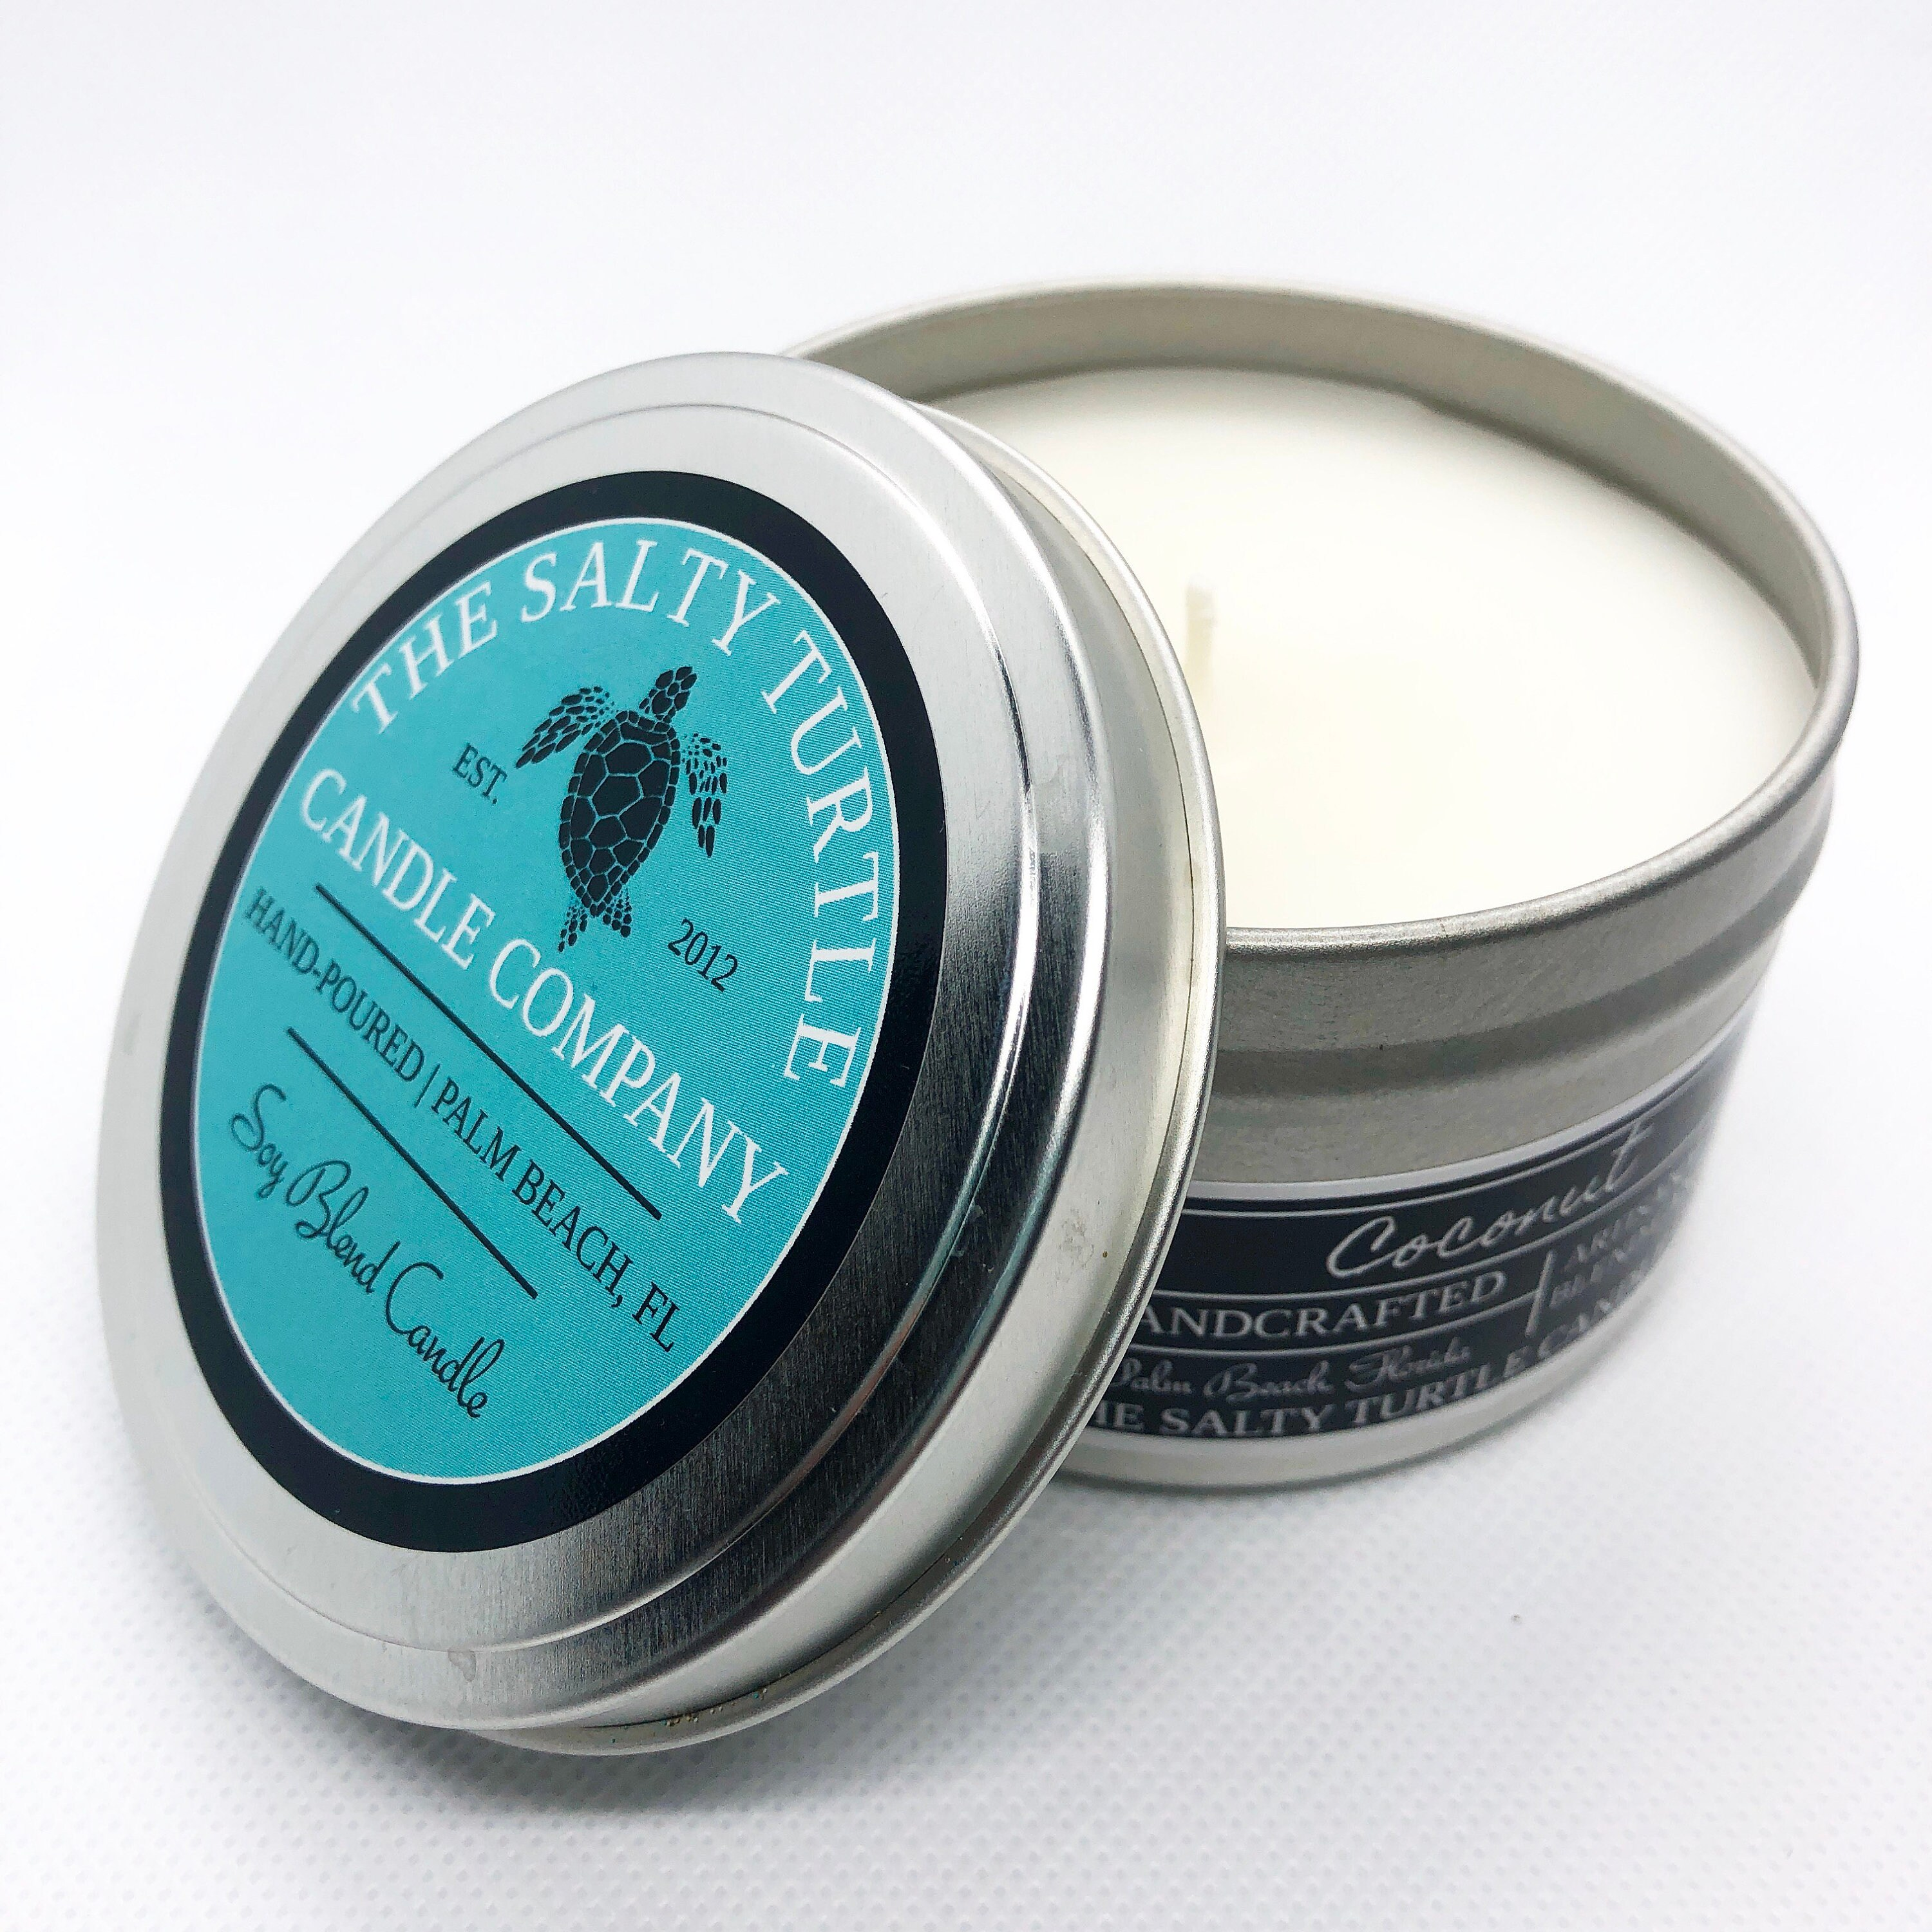 COCONUT - Choose from Candle Travel Tins or Wax Melt Cube